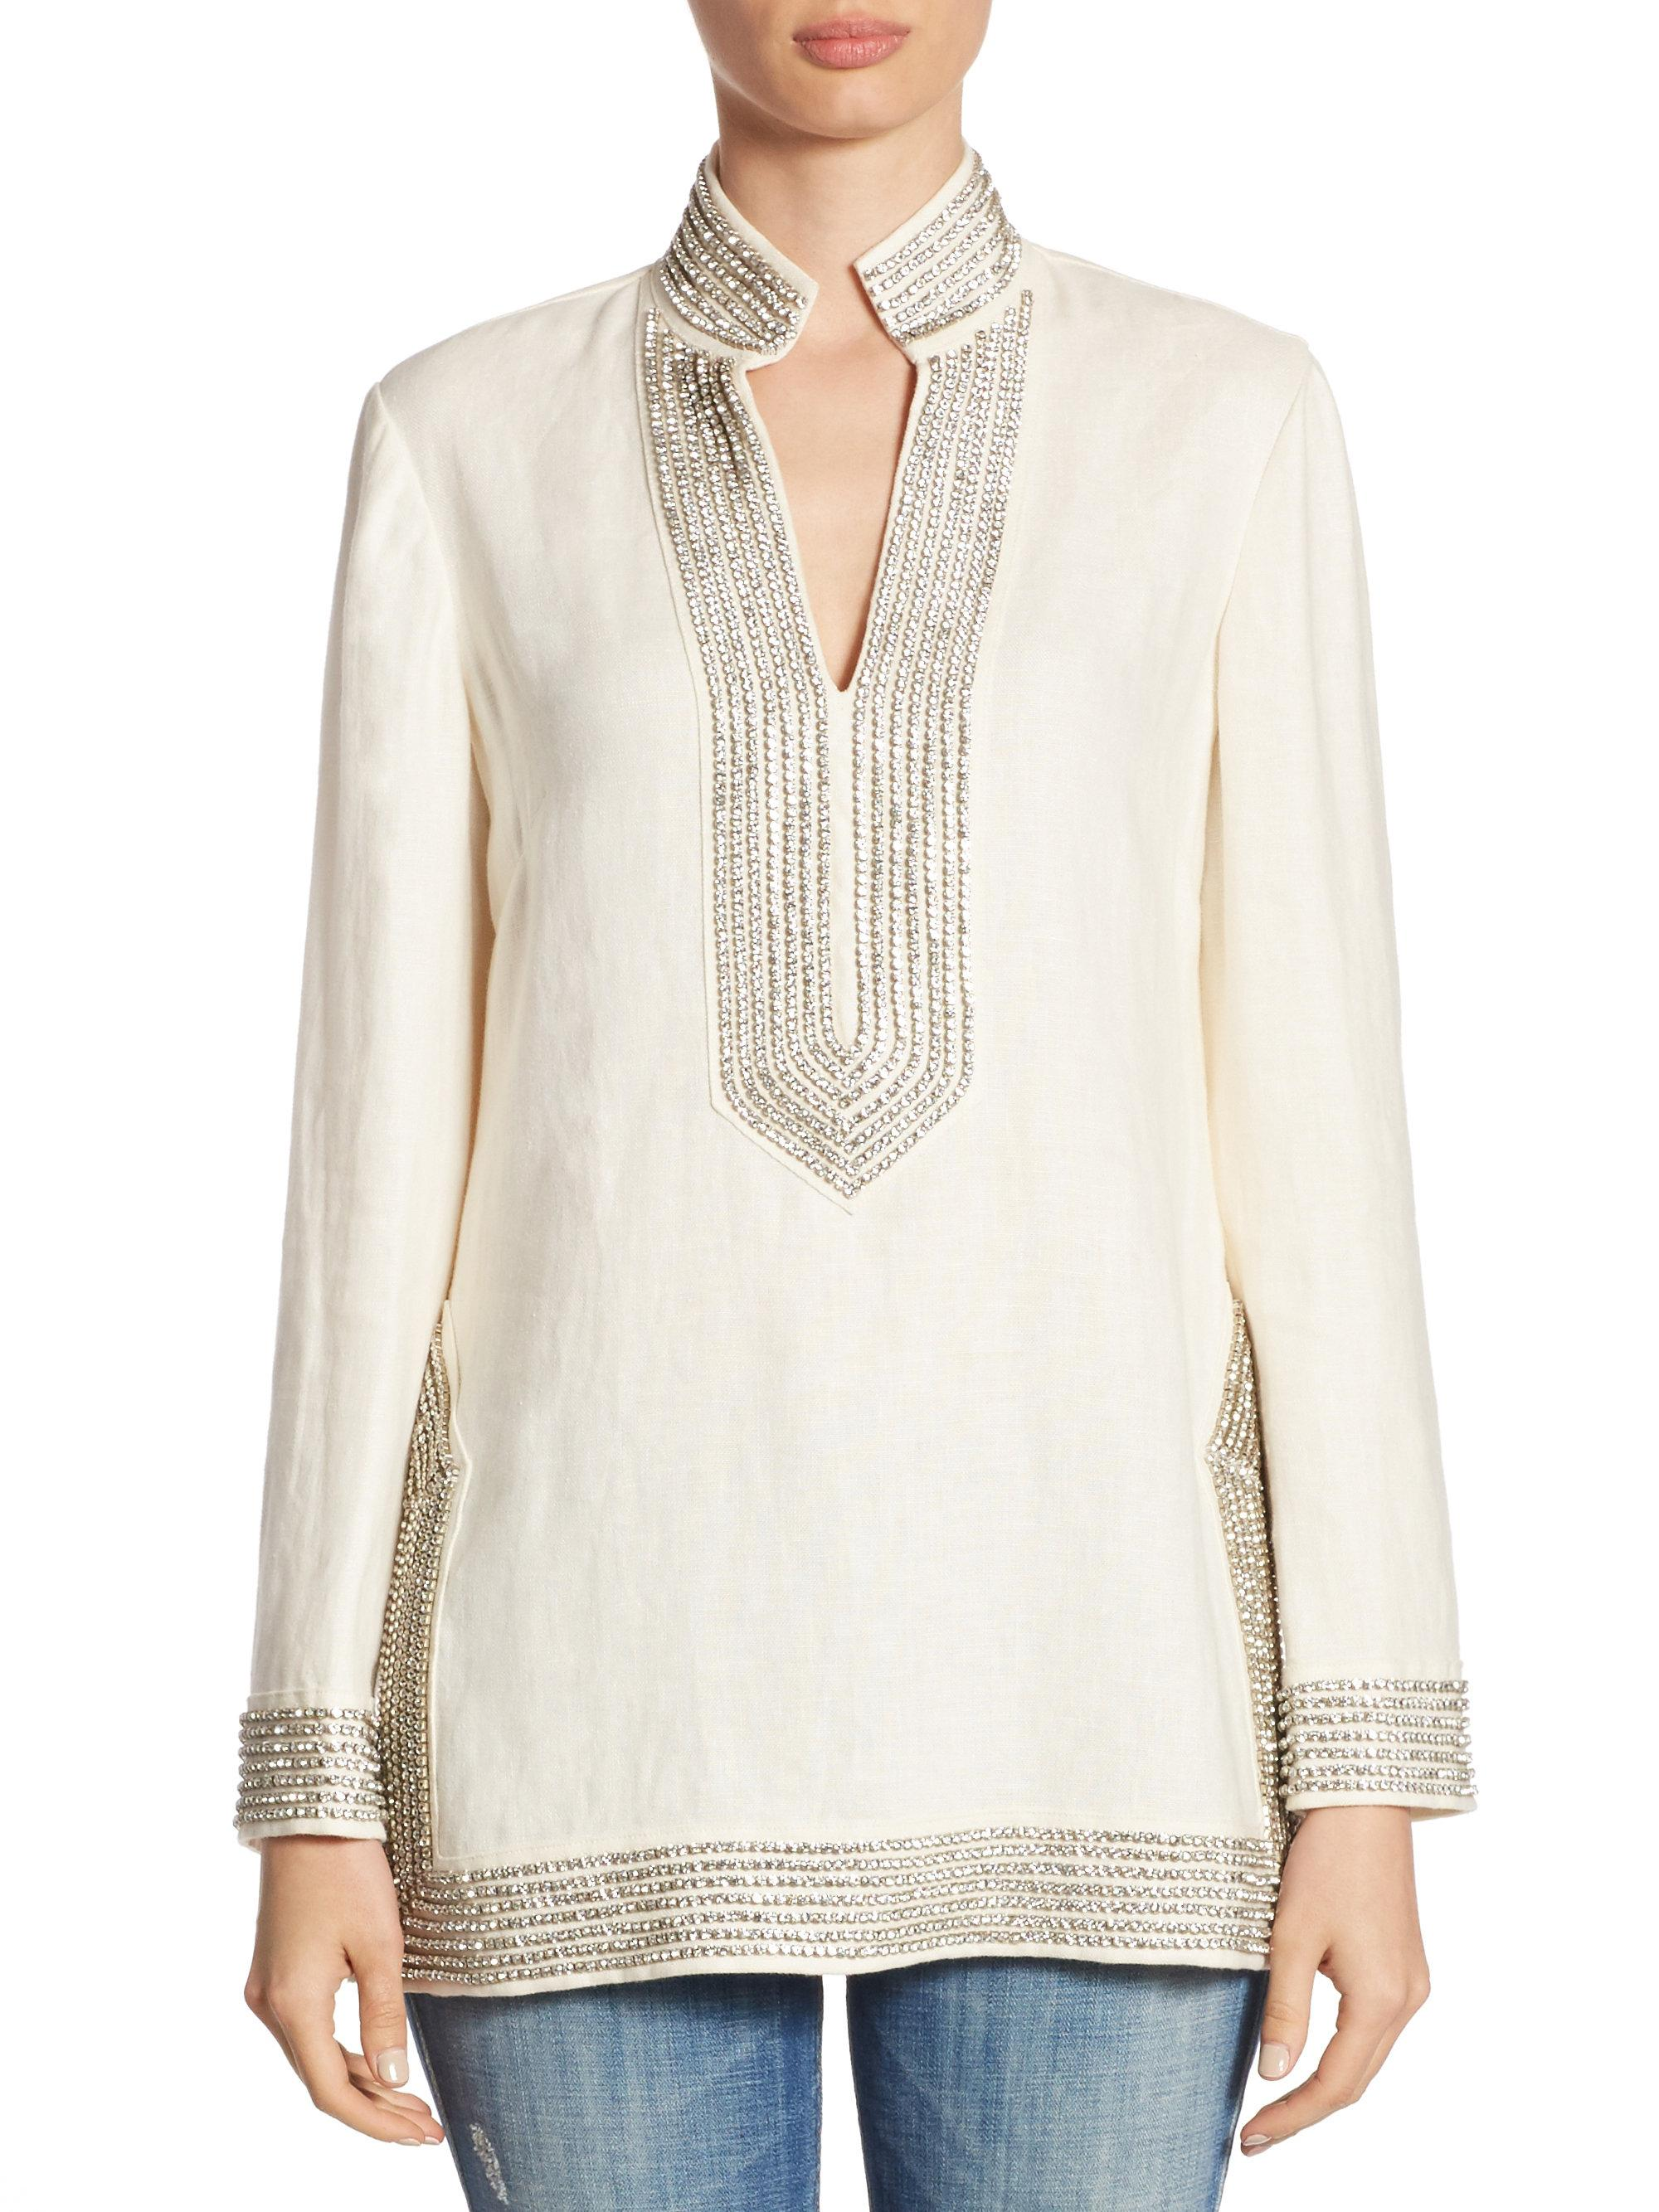 d8ce450c8d2 Tory Burch Crystal-embellished Linen Tunic in White - Lyst